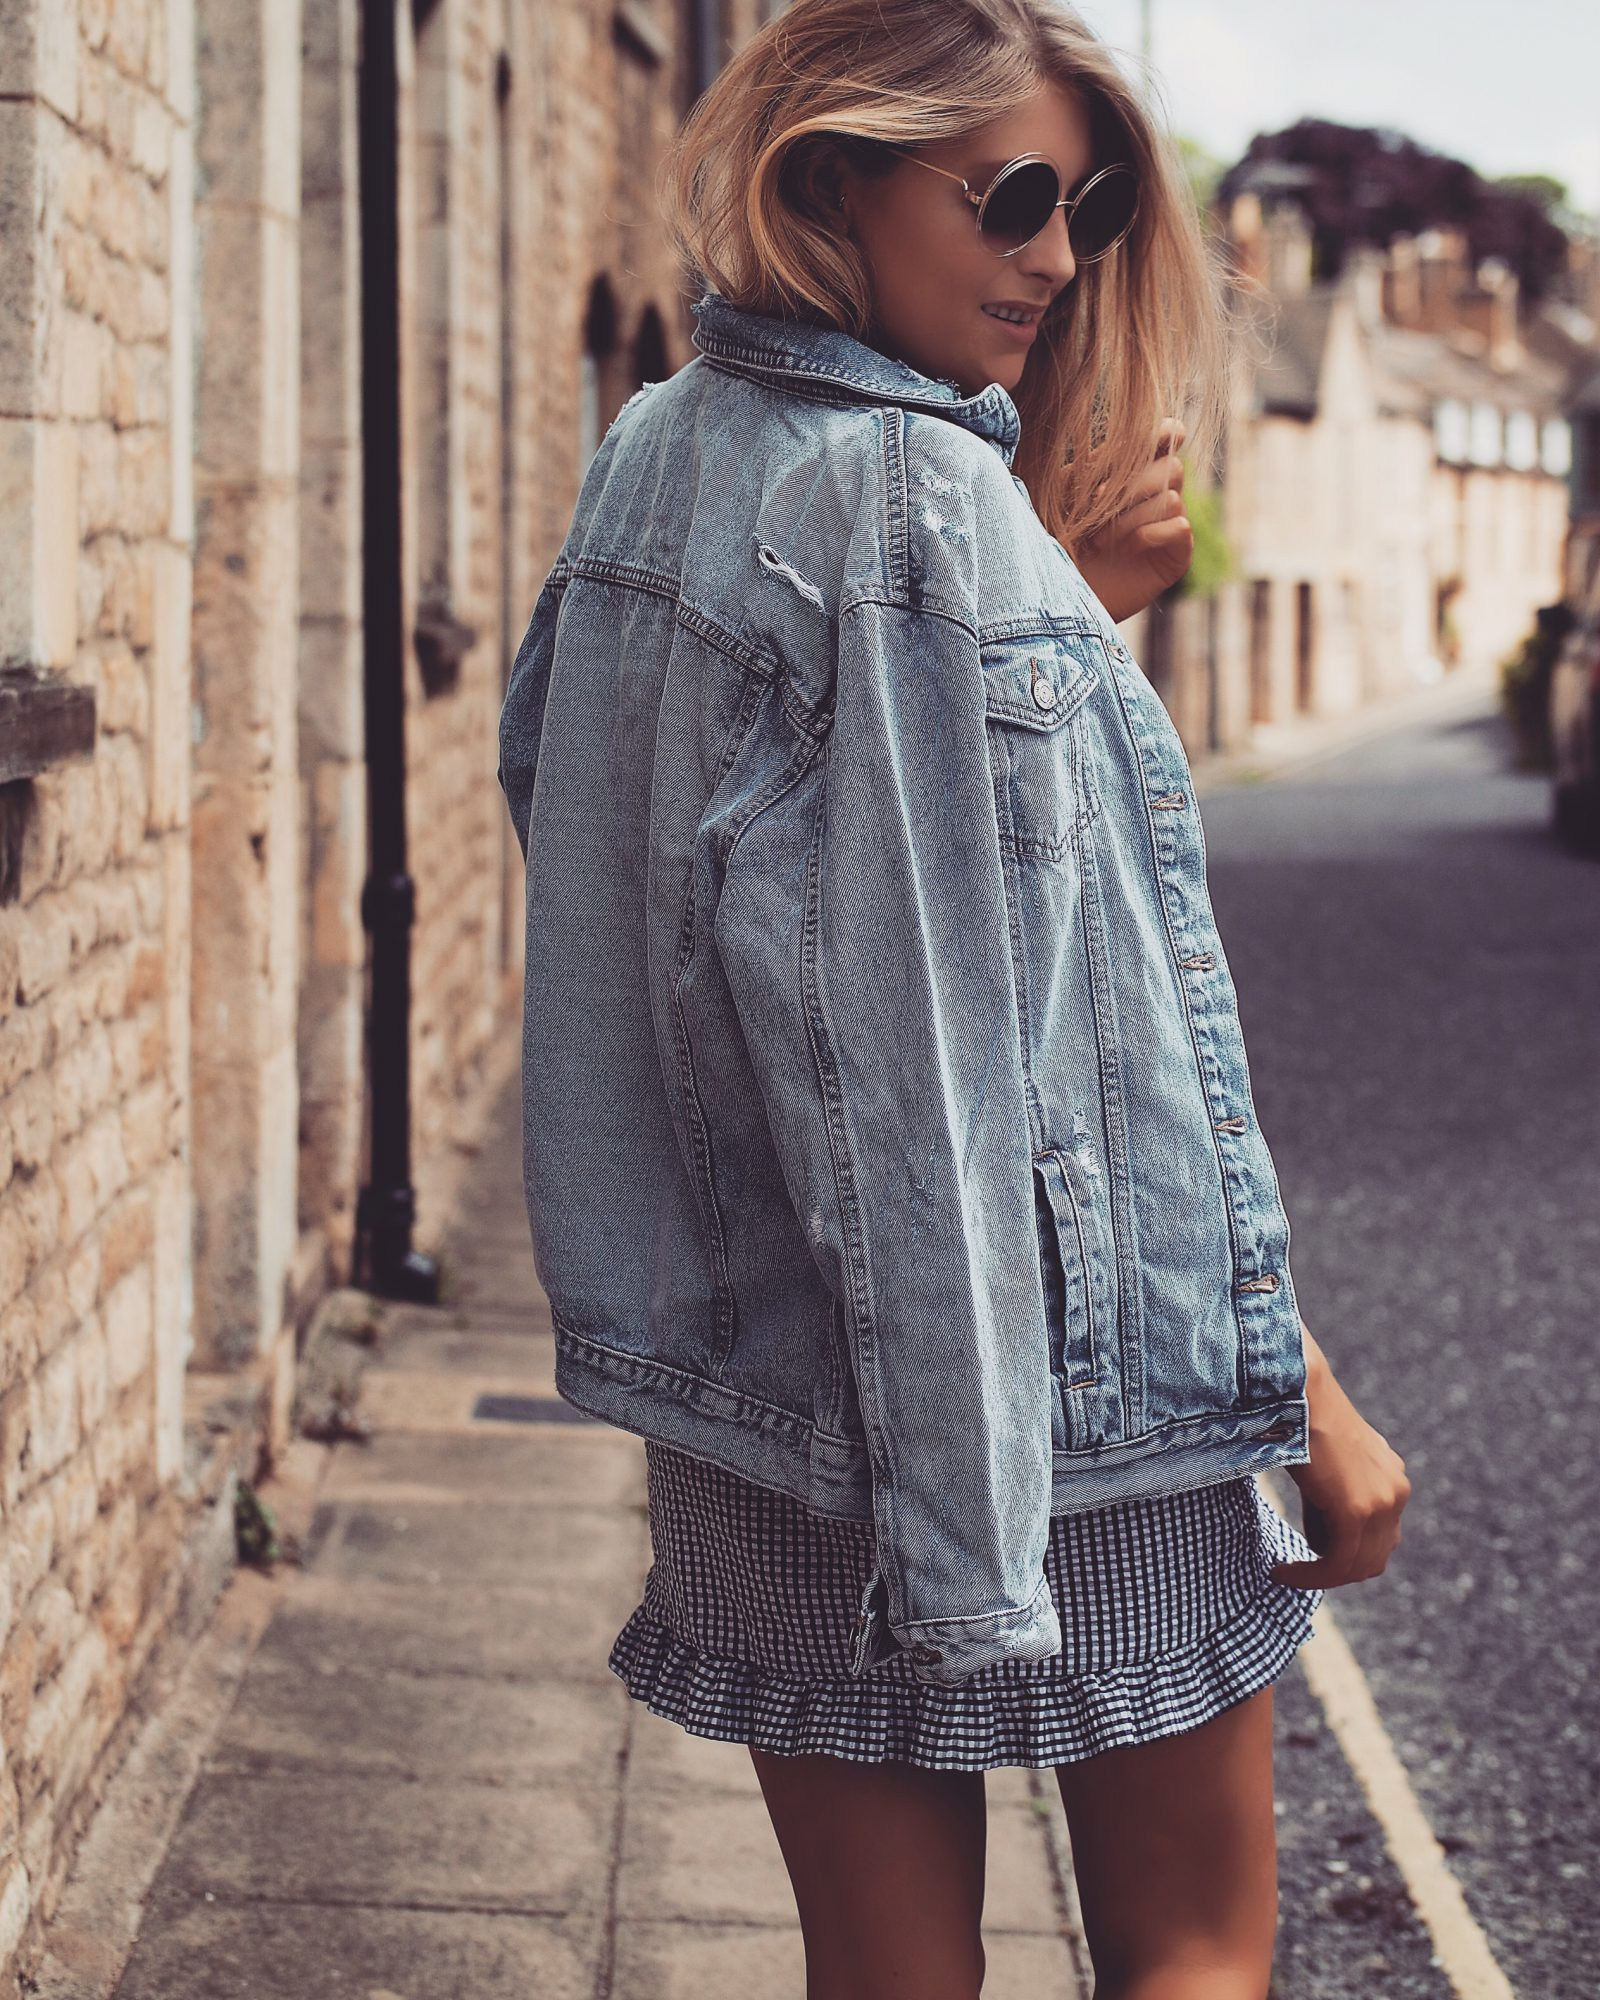 Summer BBQ Style - Oversized Denim Jacket